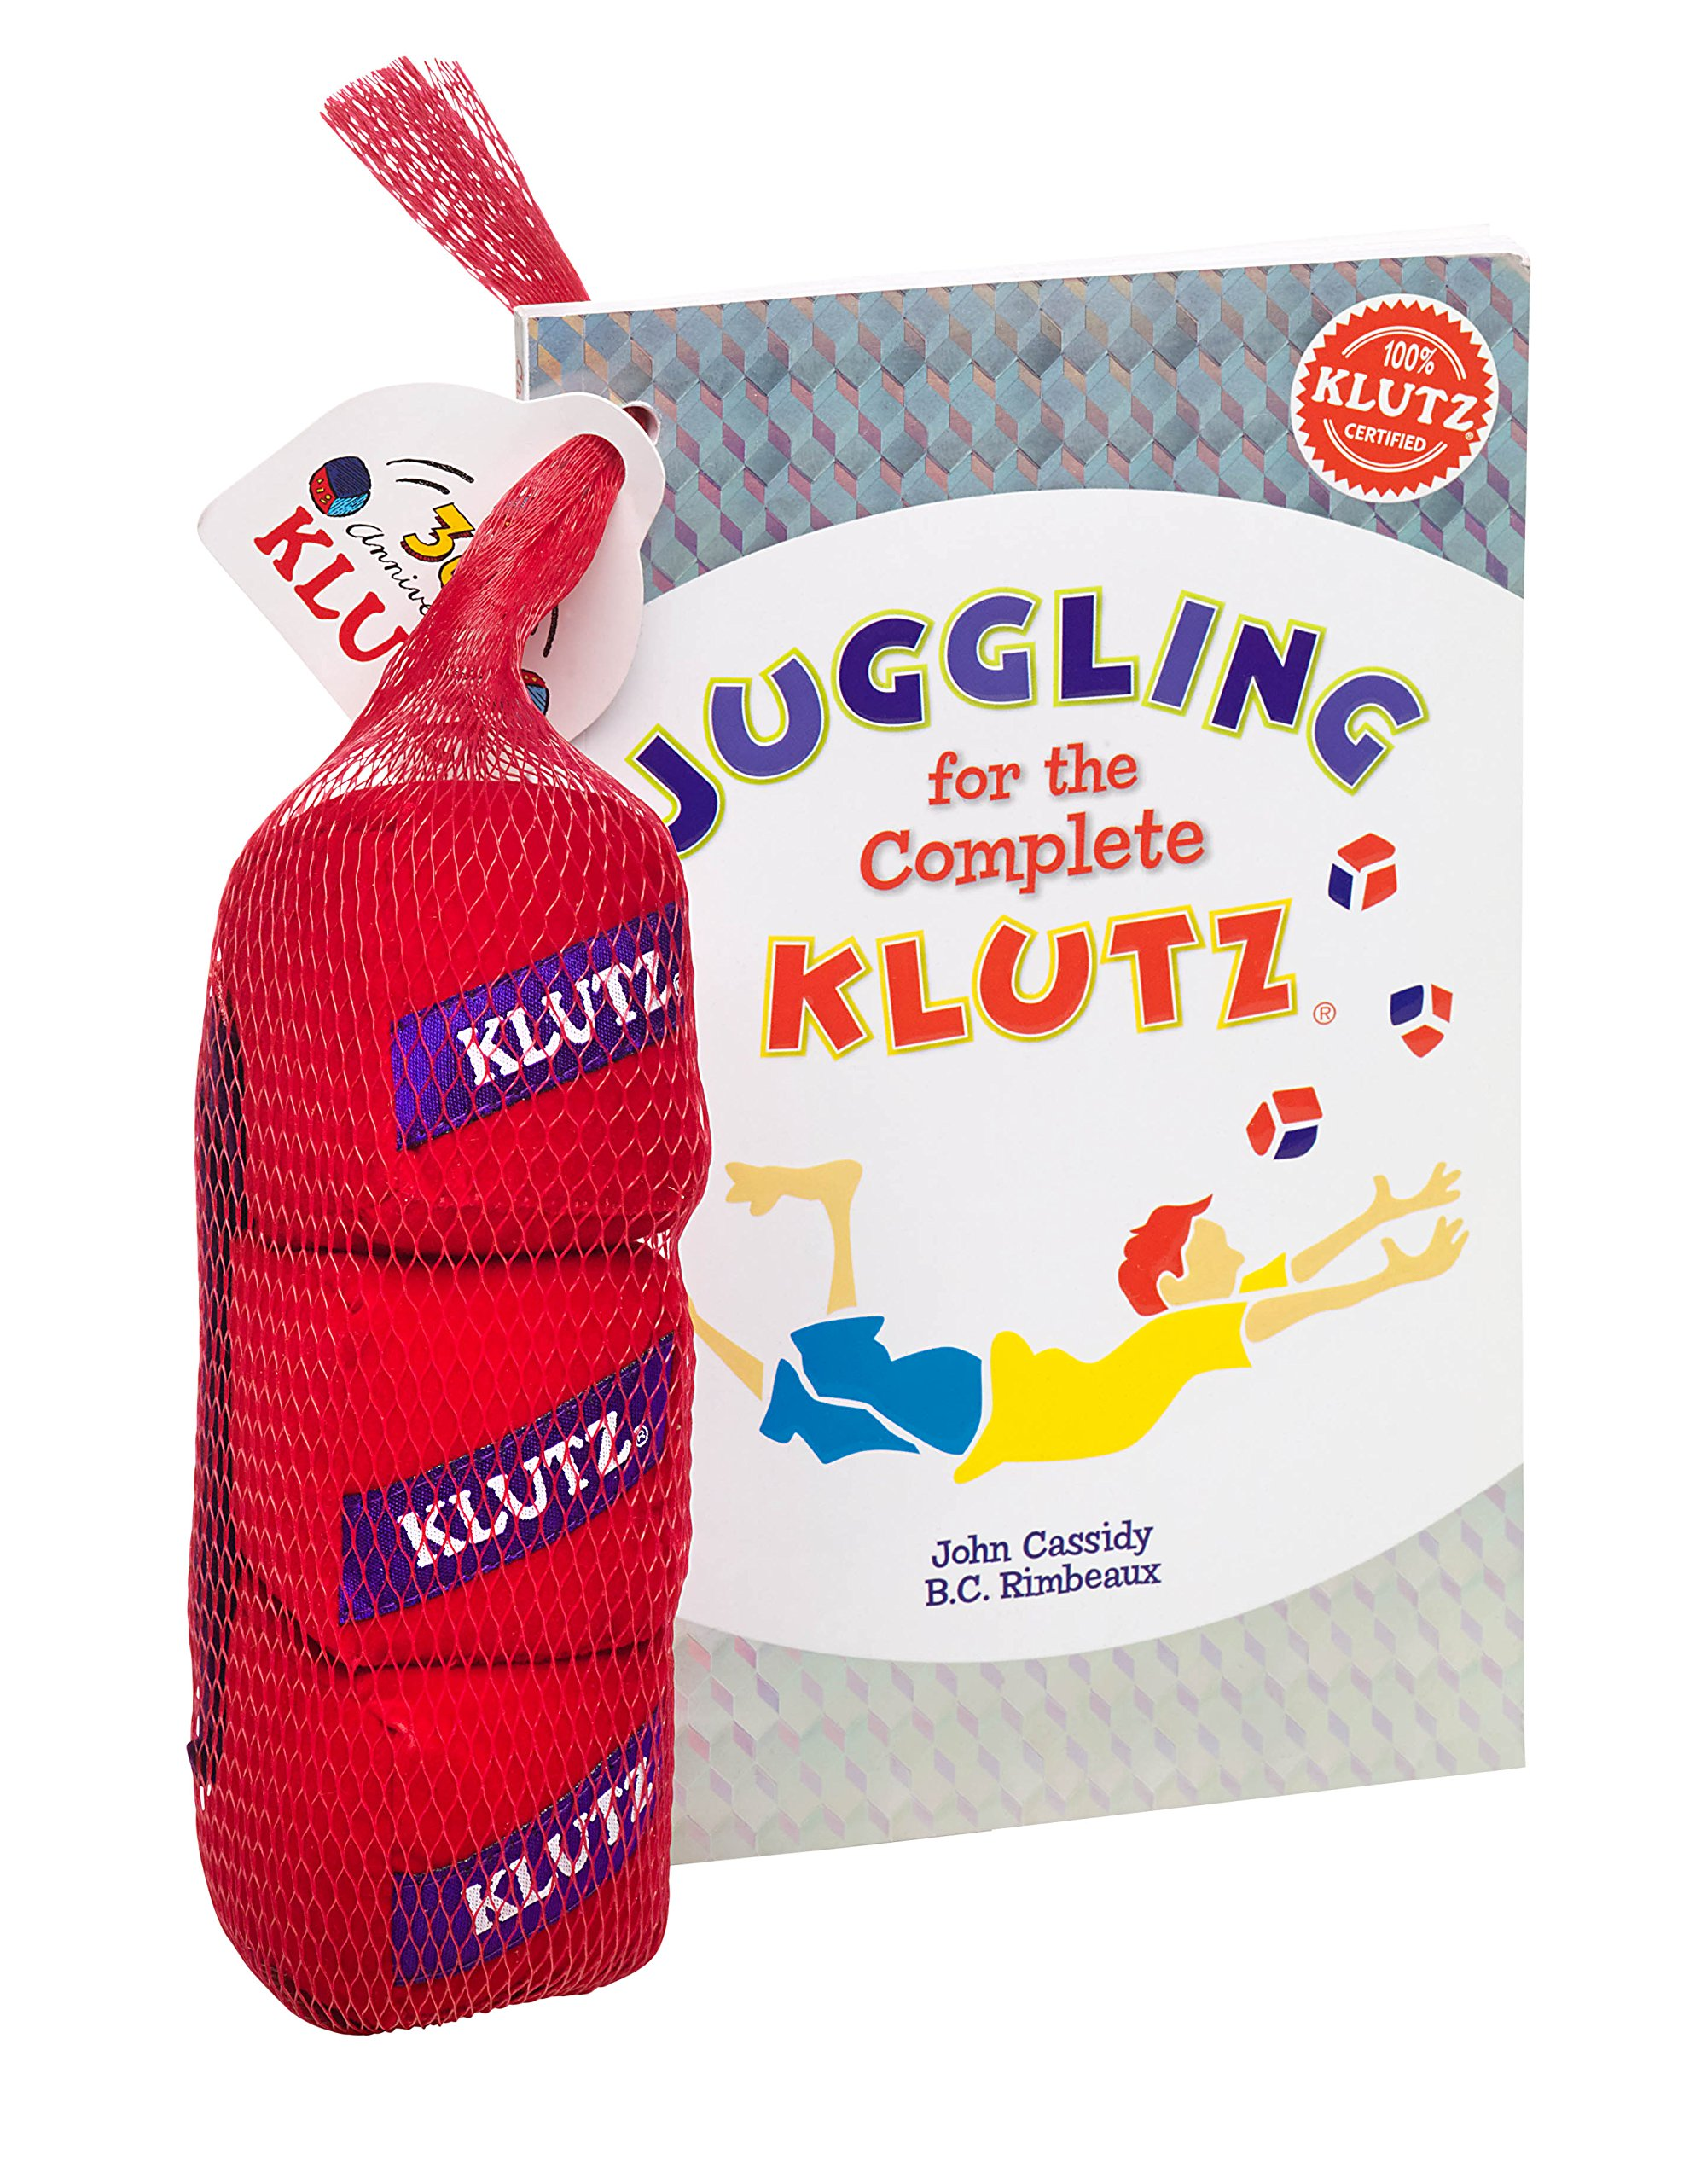 Juggling for the Complete Klutz by Klutz